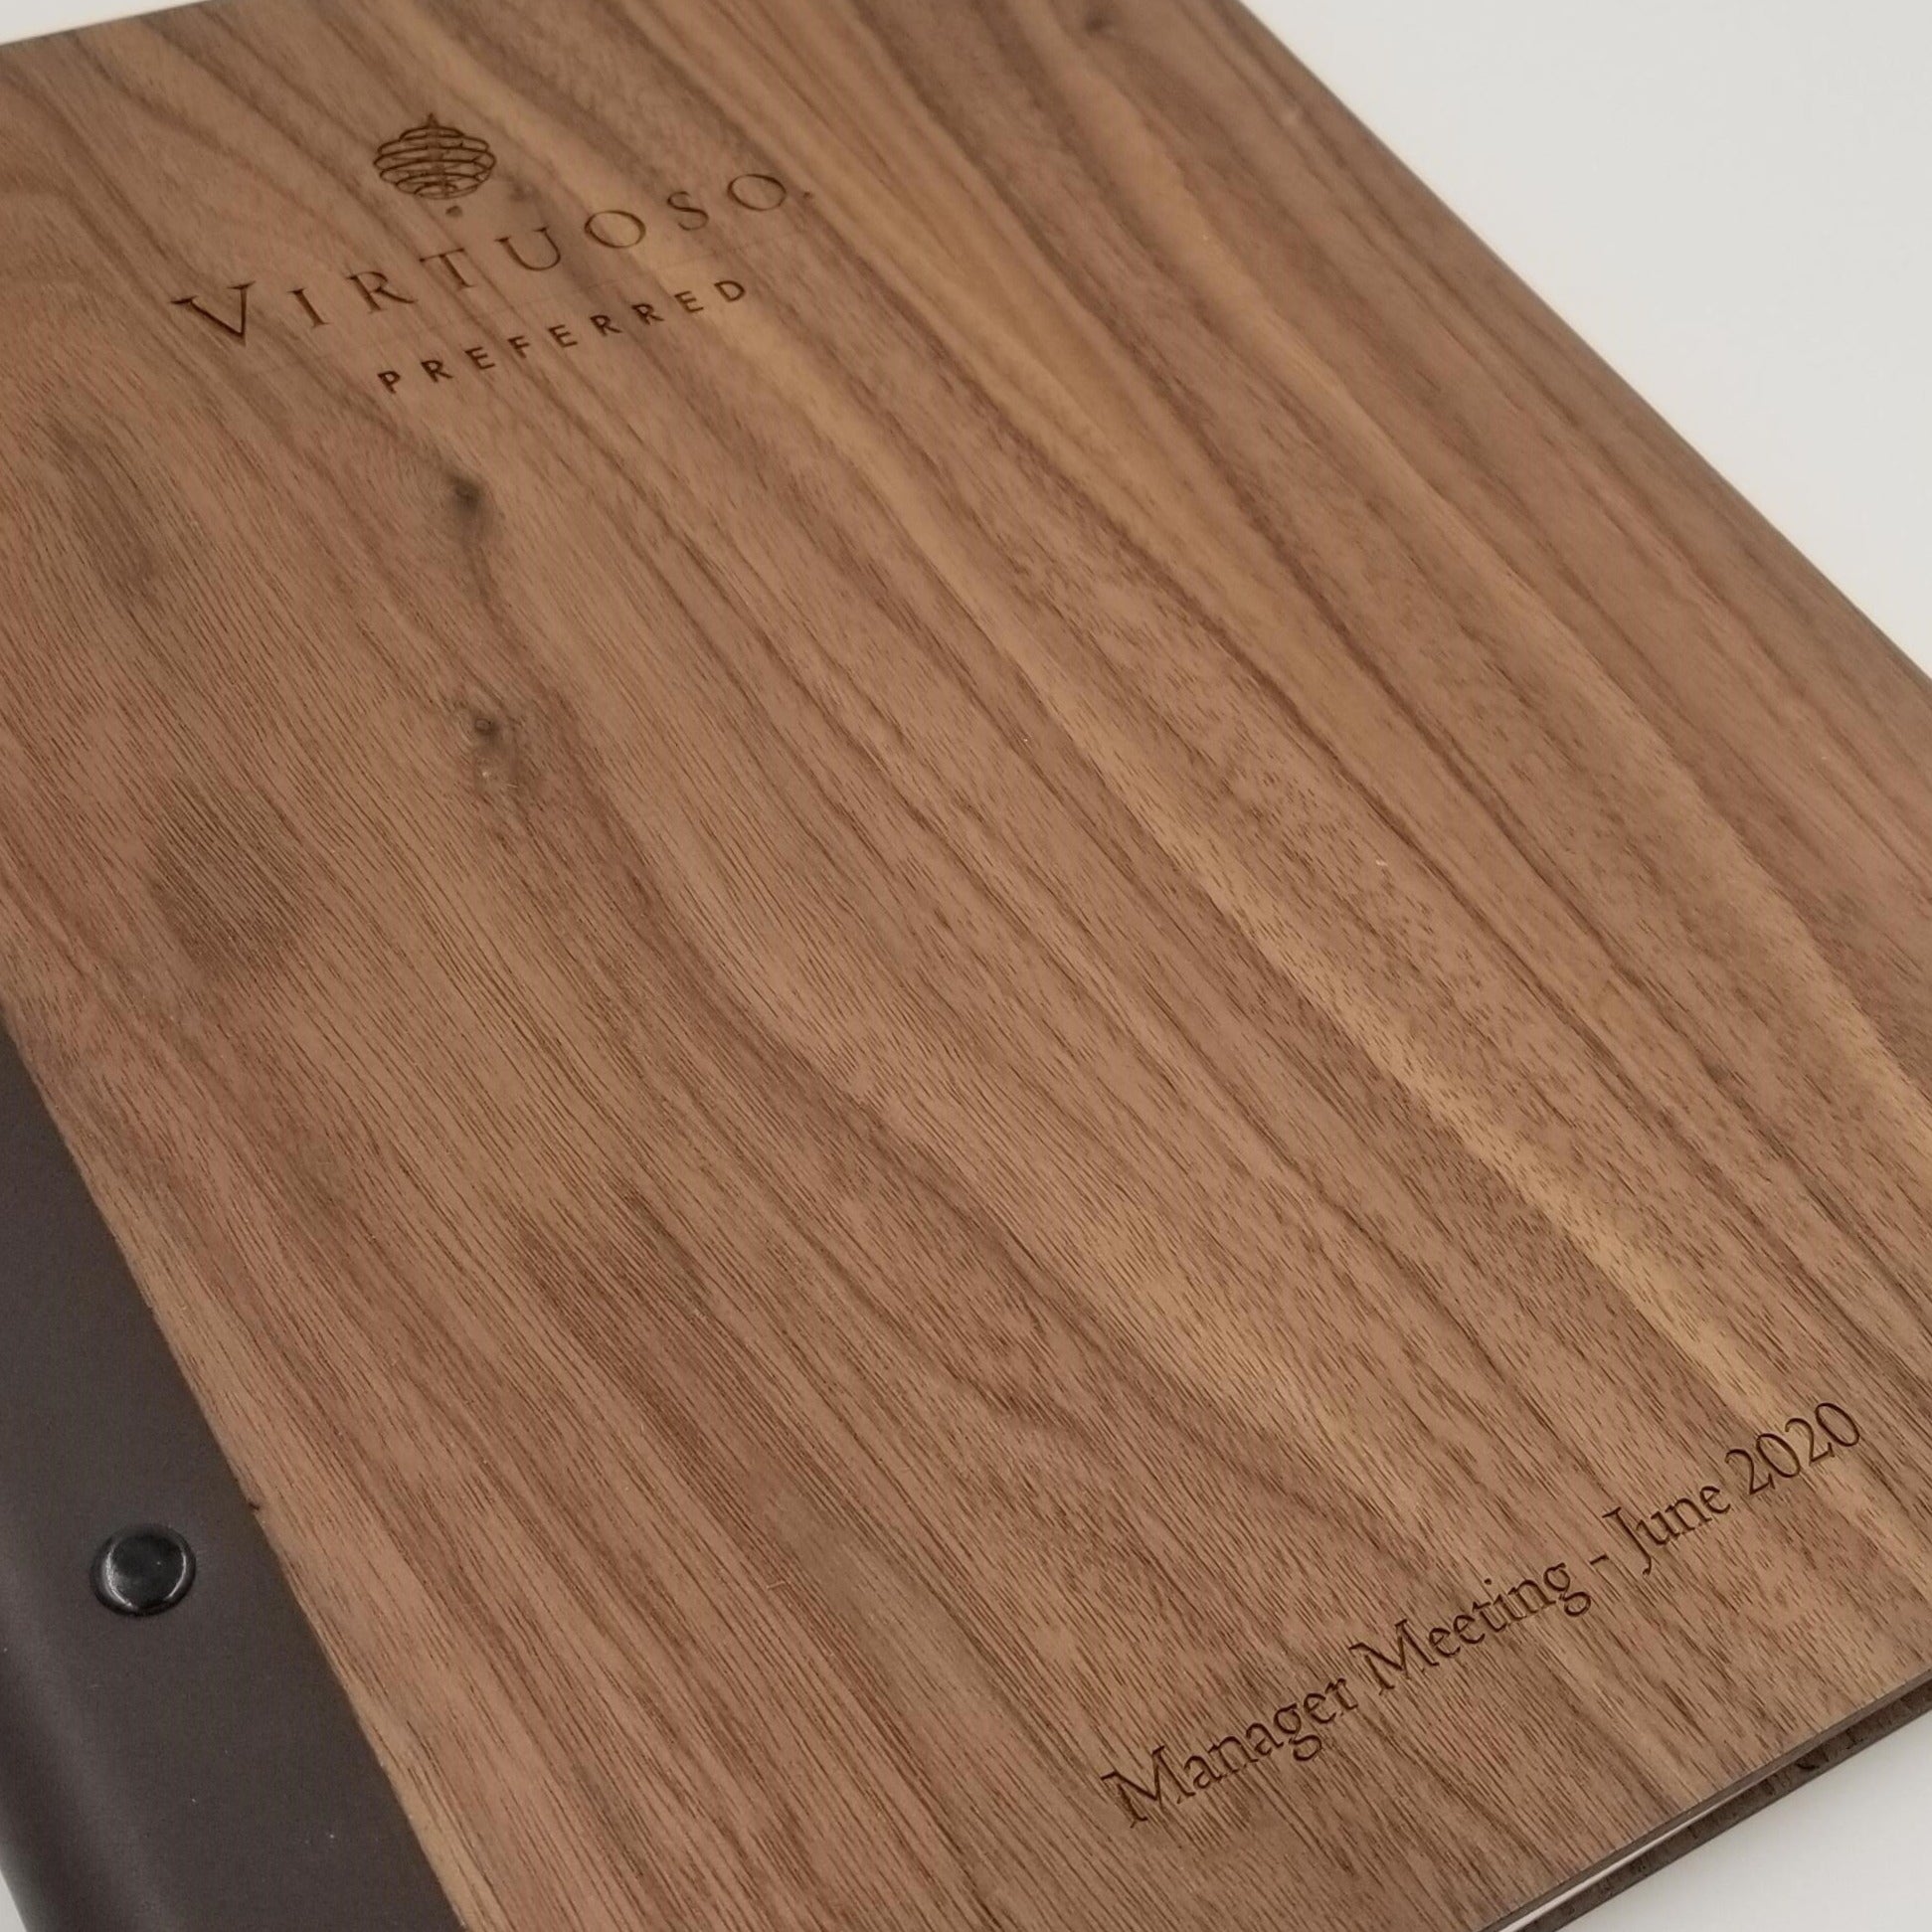 Padfolio in Walnut